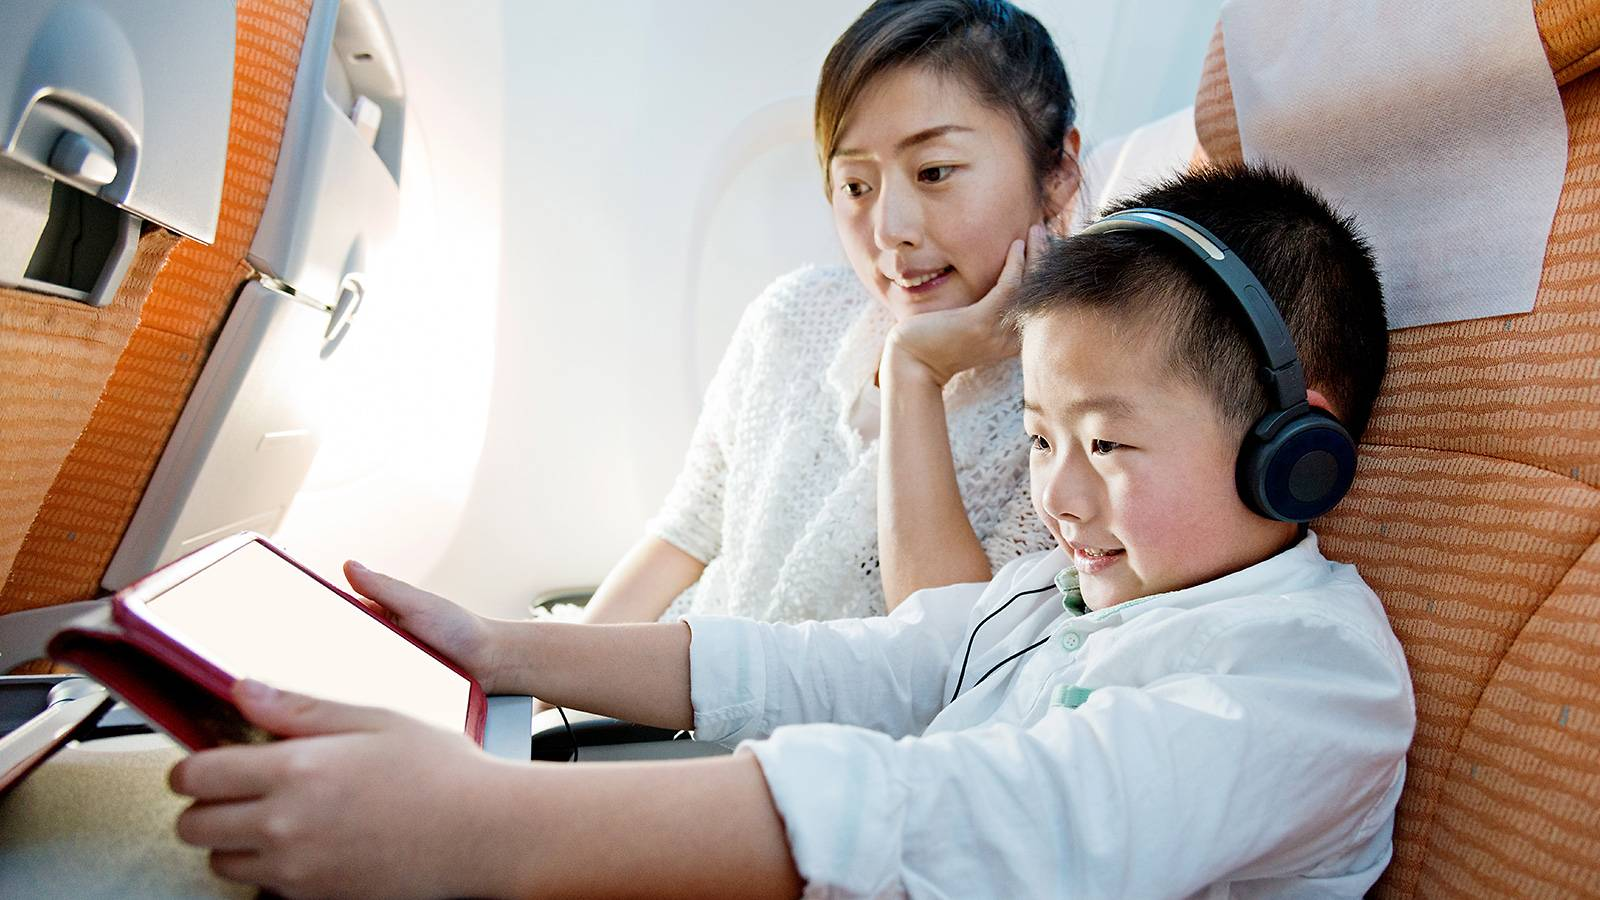 Tots-10-travel-hacks-to-survive-long-haul-flights-with-your-tot-2